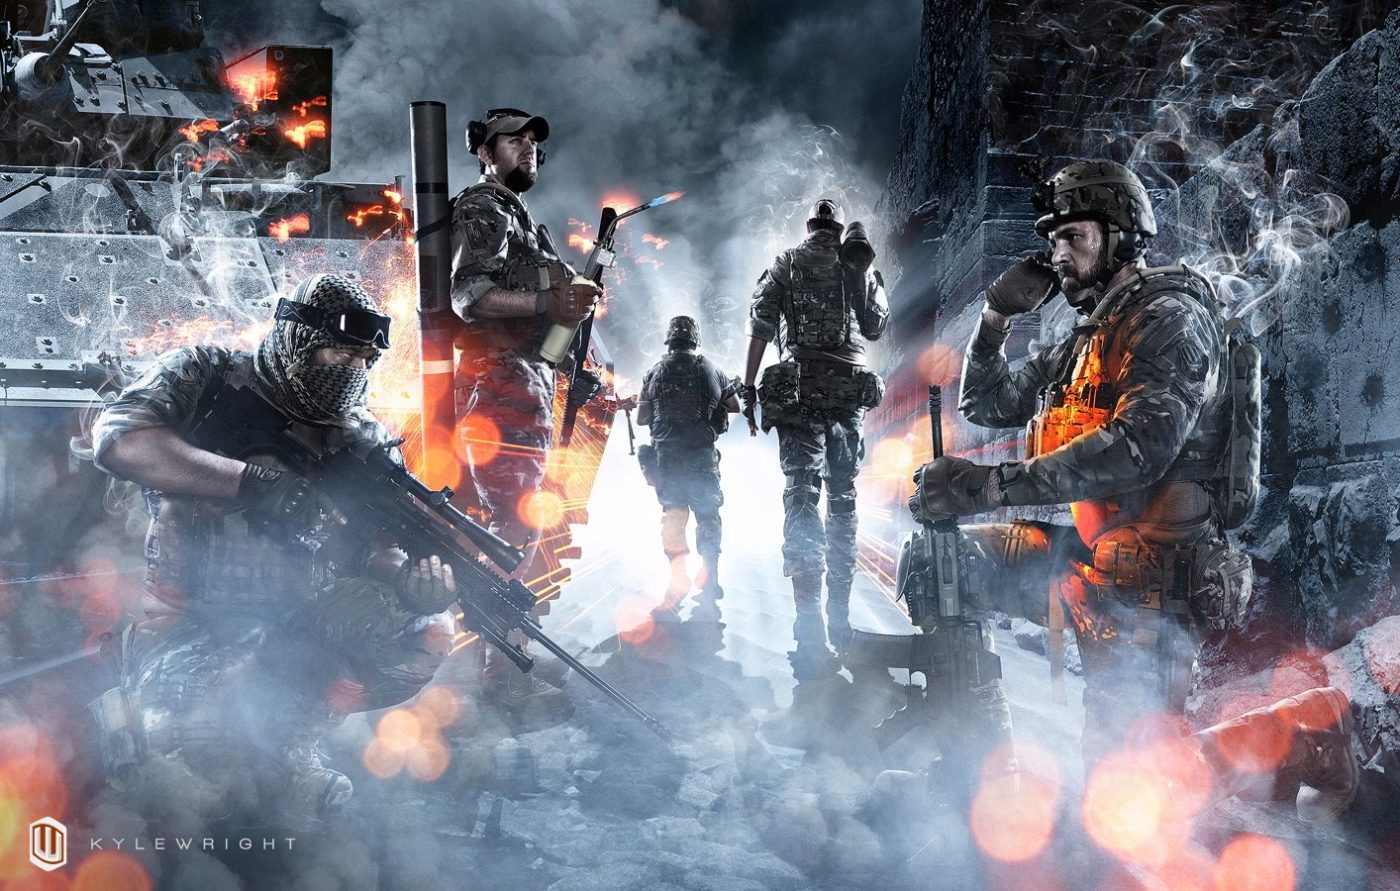 Be Advised Jaw Dropping Battlefield 3 Artwork Spotted